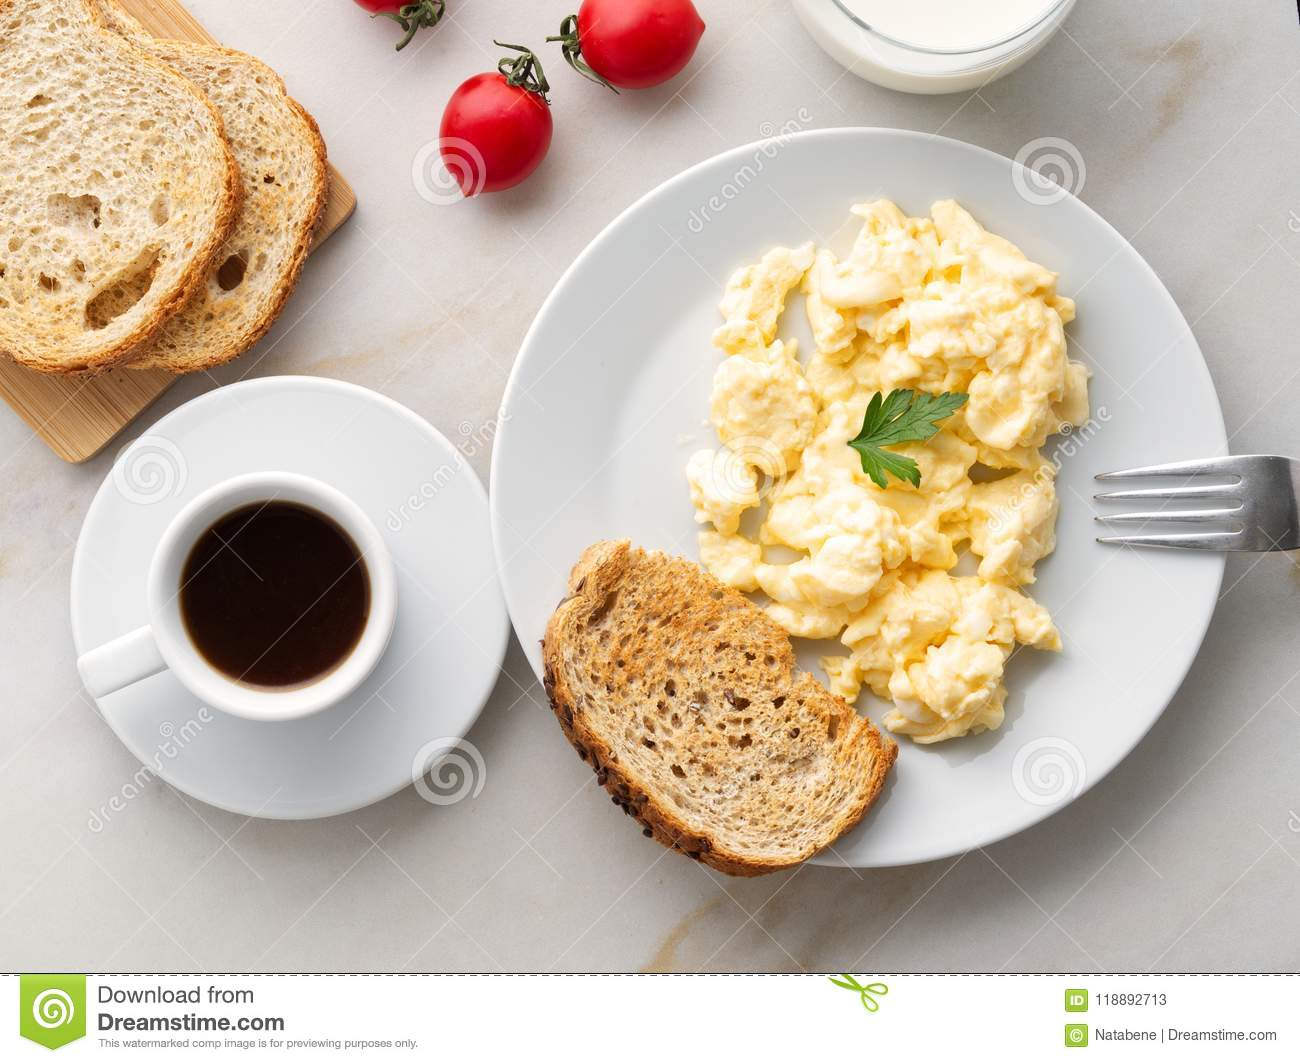 Breakfast with pan-fried scrambled eggs, cup of coffee, tomatoes on white stone background. Omelette, top view